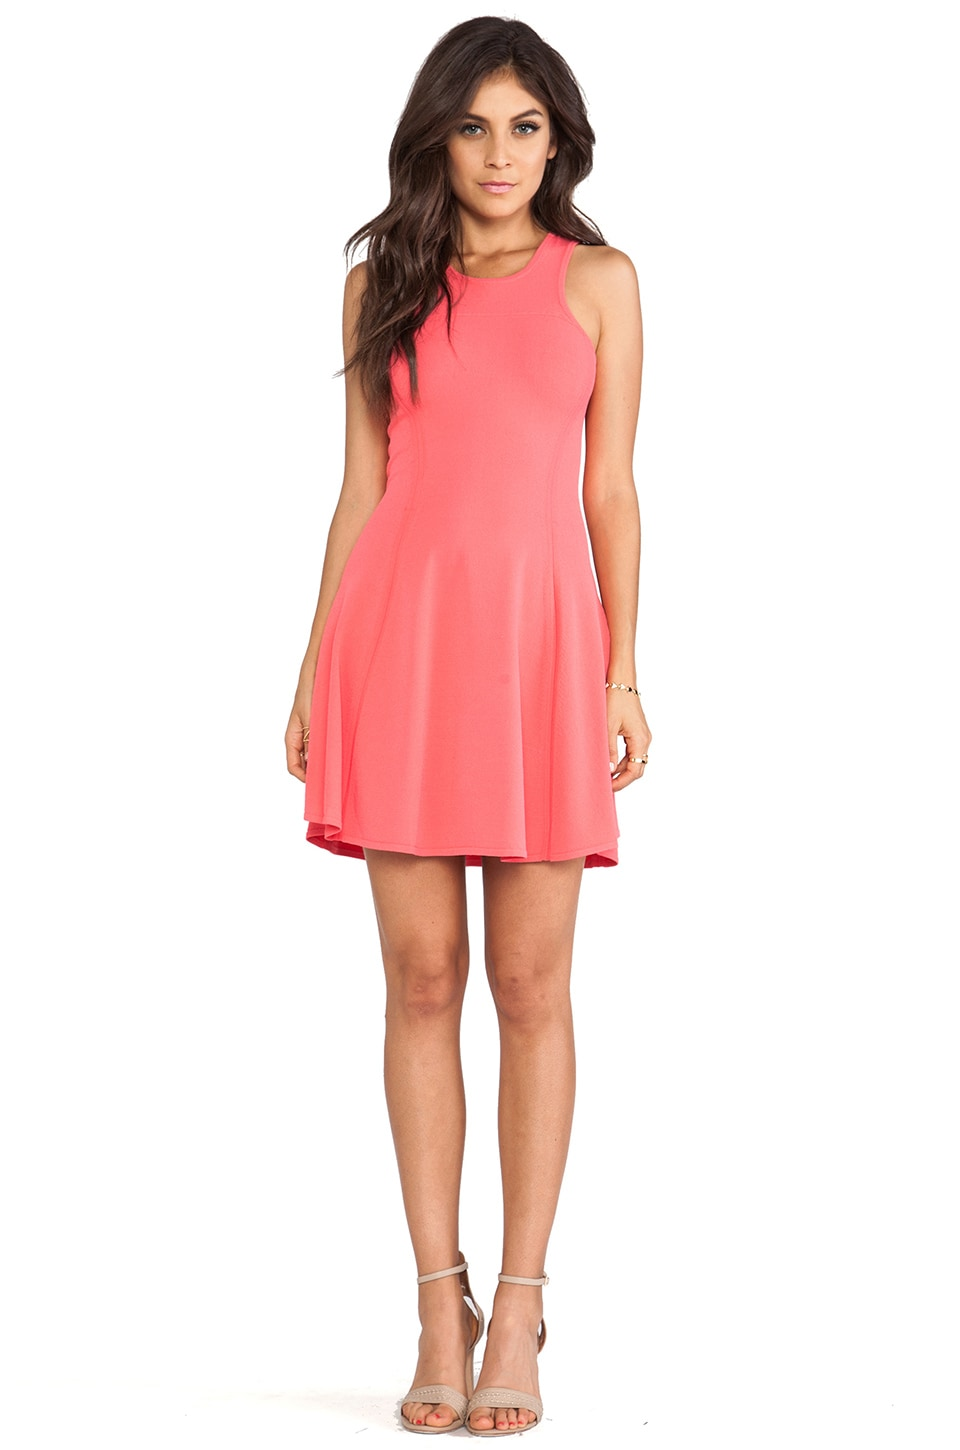 Autumn Cashmere Carved Armhole Fit & Flare Dress in Watermelon